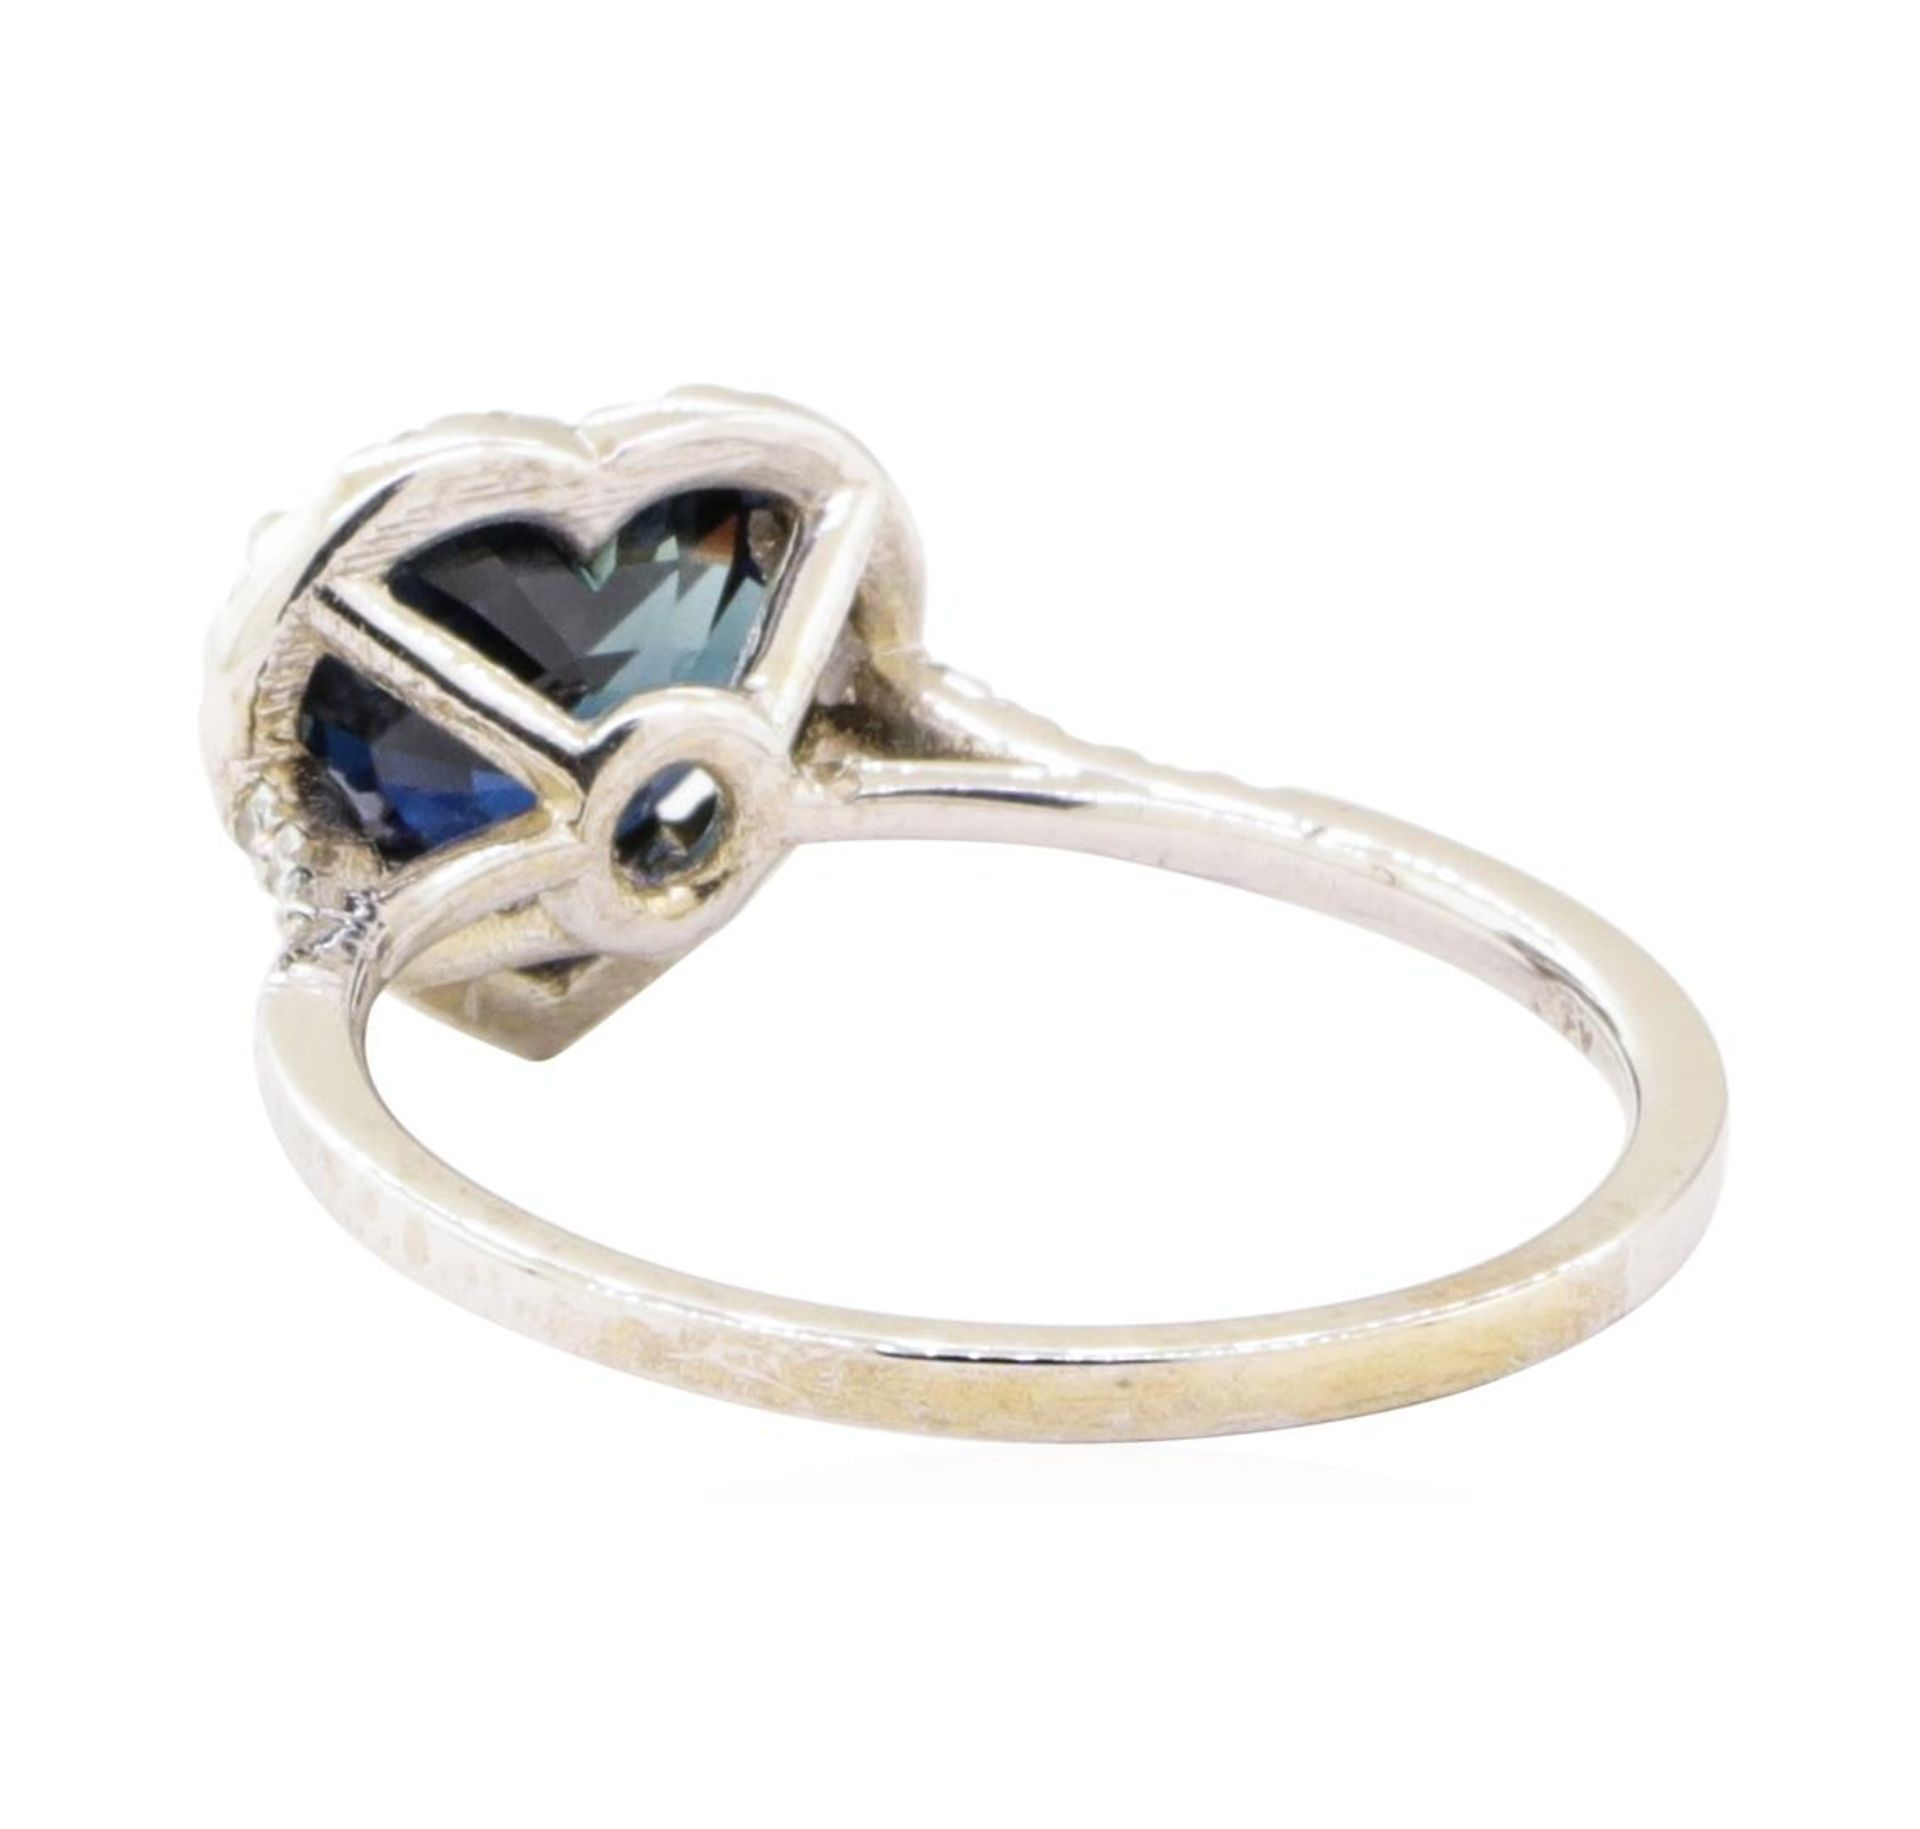 2.66 ctw Sapphire And Diamond Ring - 18KT White Gold - Image 3 of 5